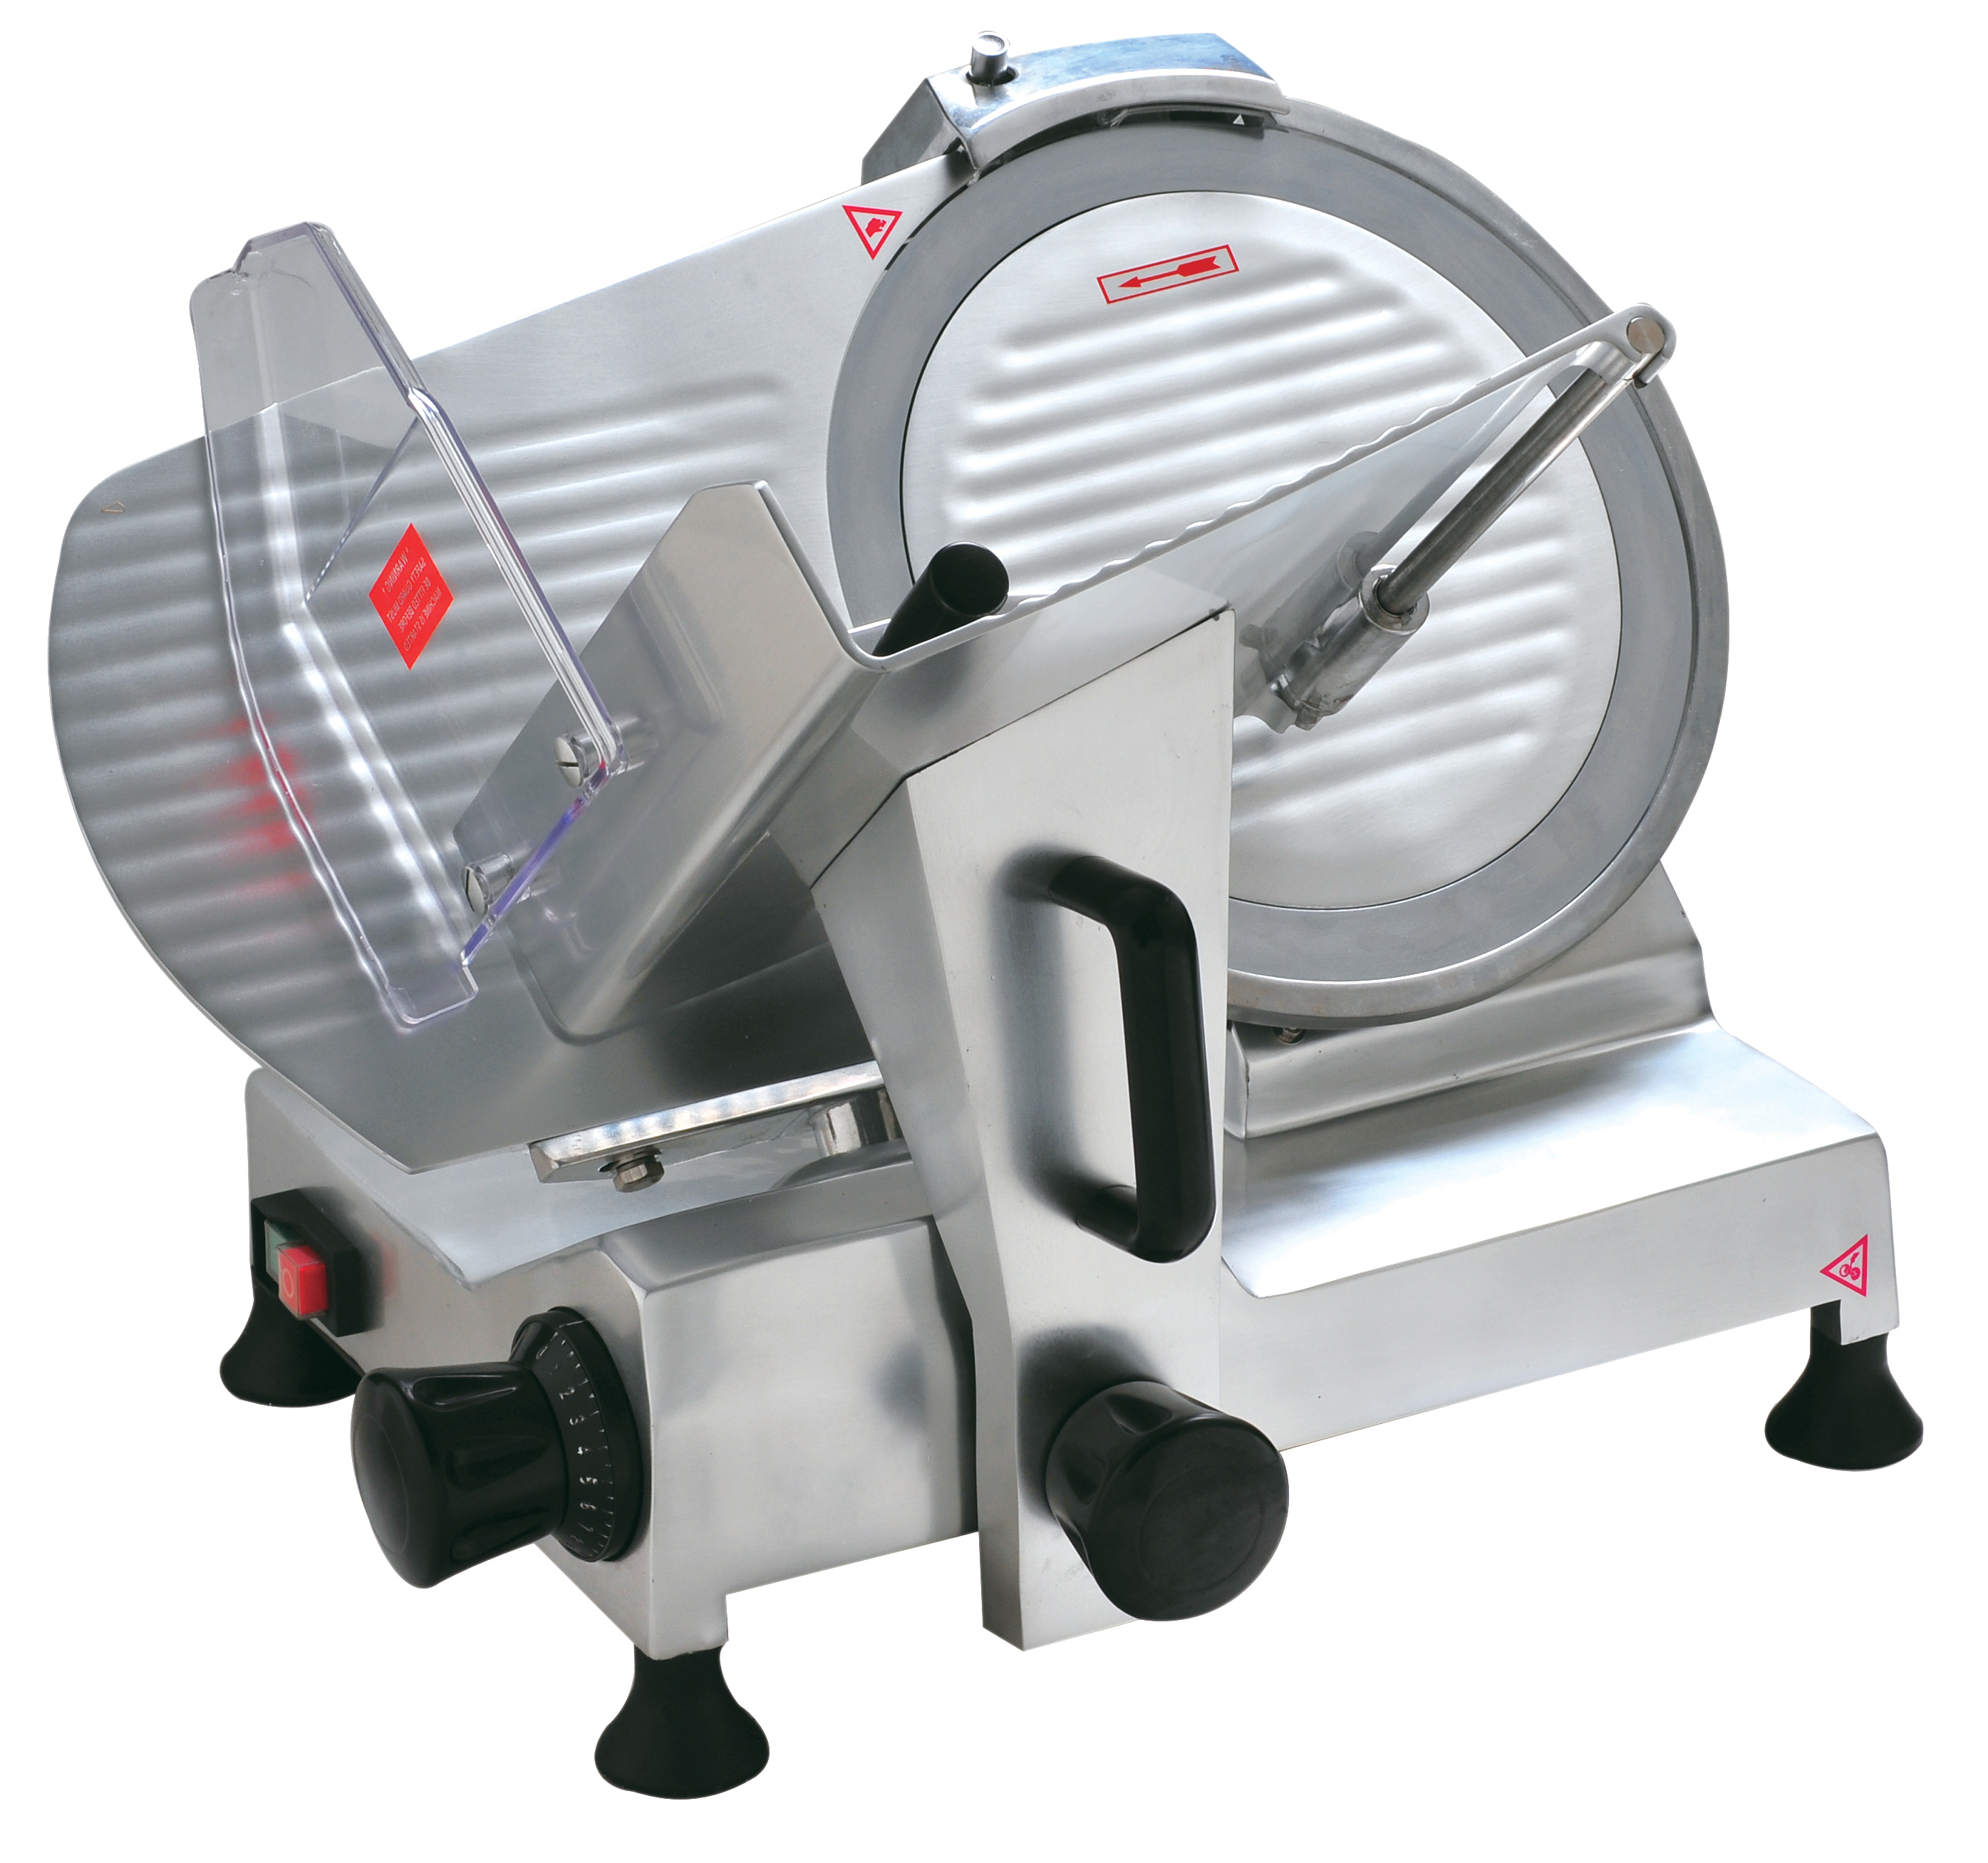 Omcan MS-CN-0300 food equipment > meat slicers > 12-inch blade slicers